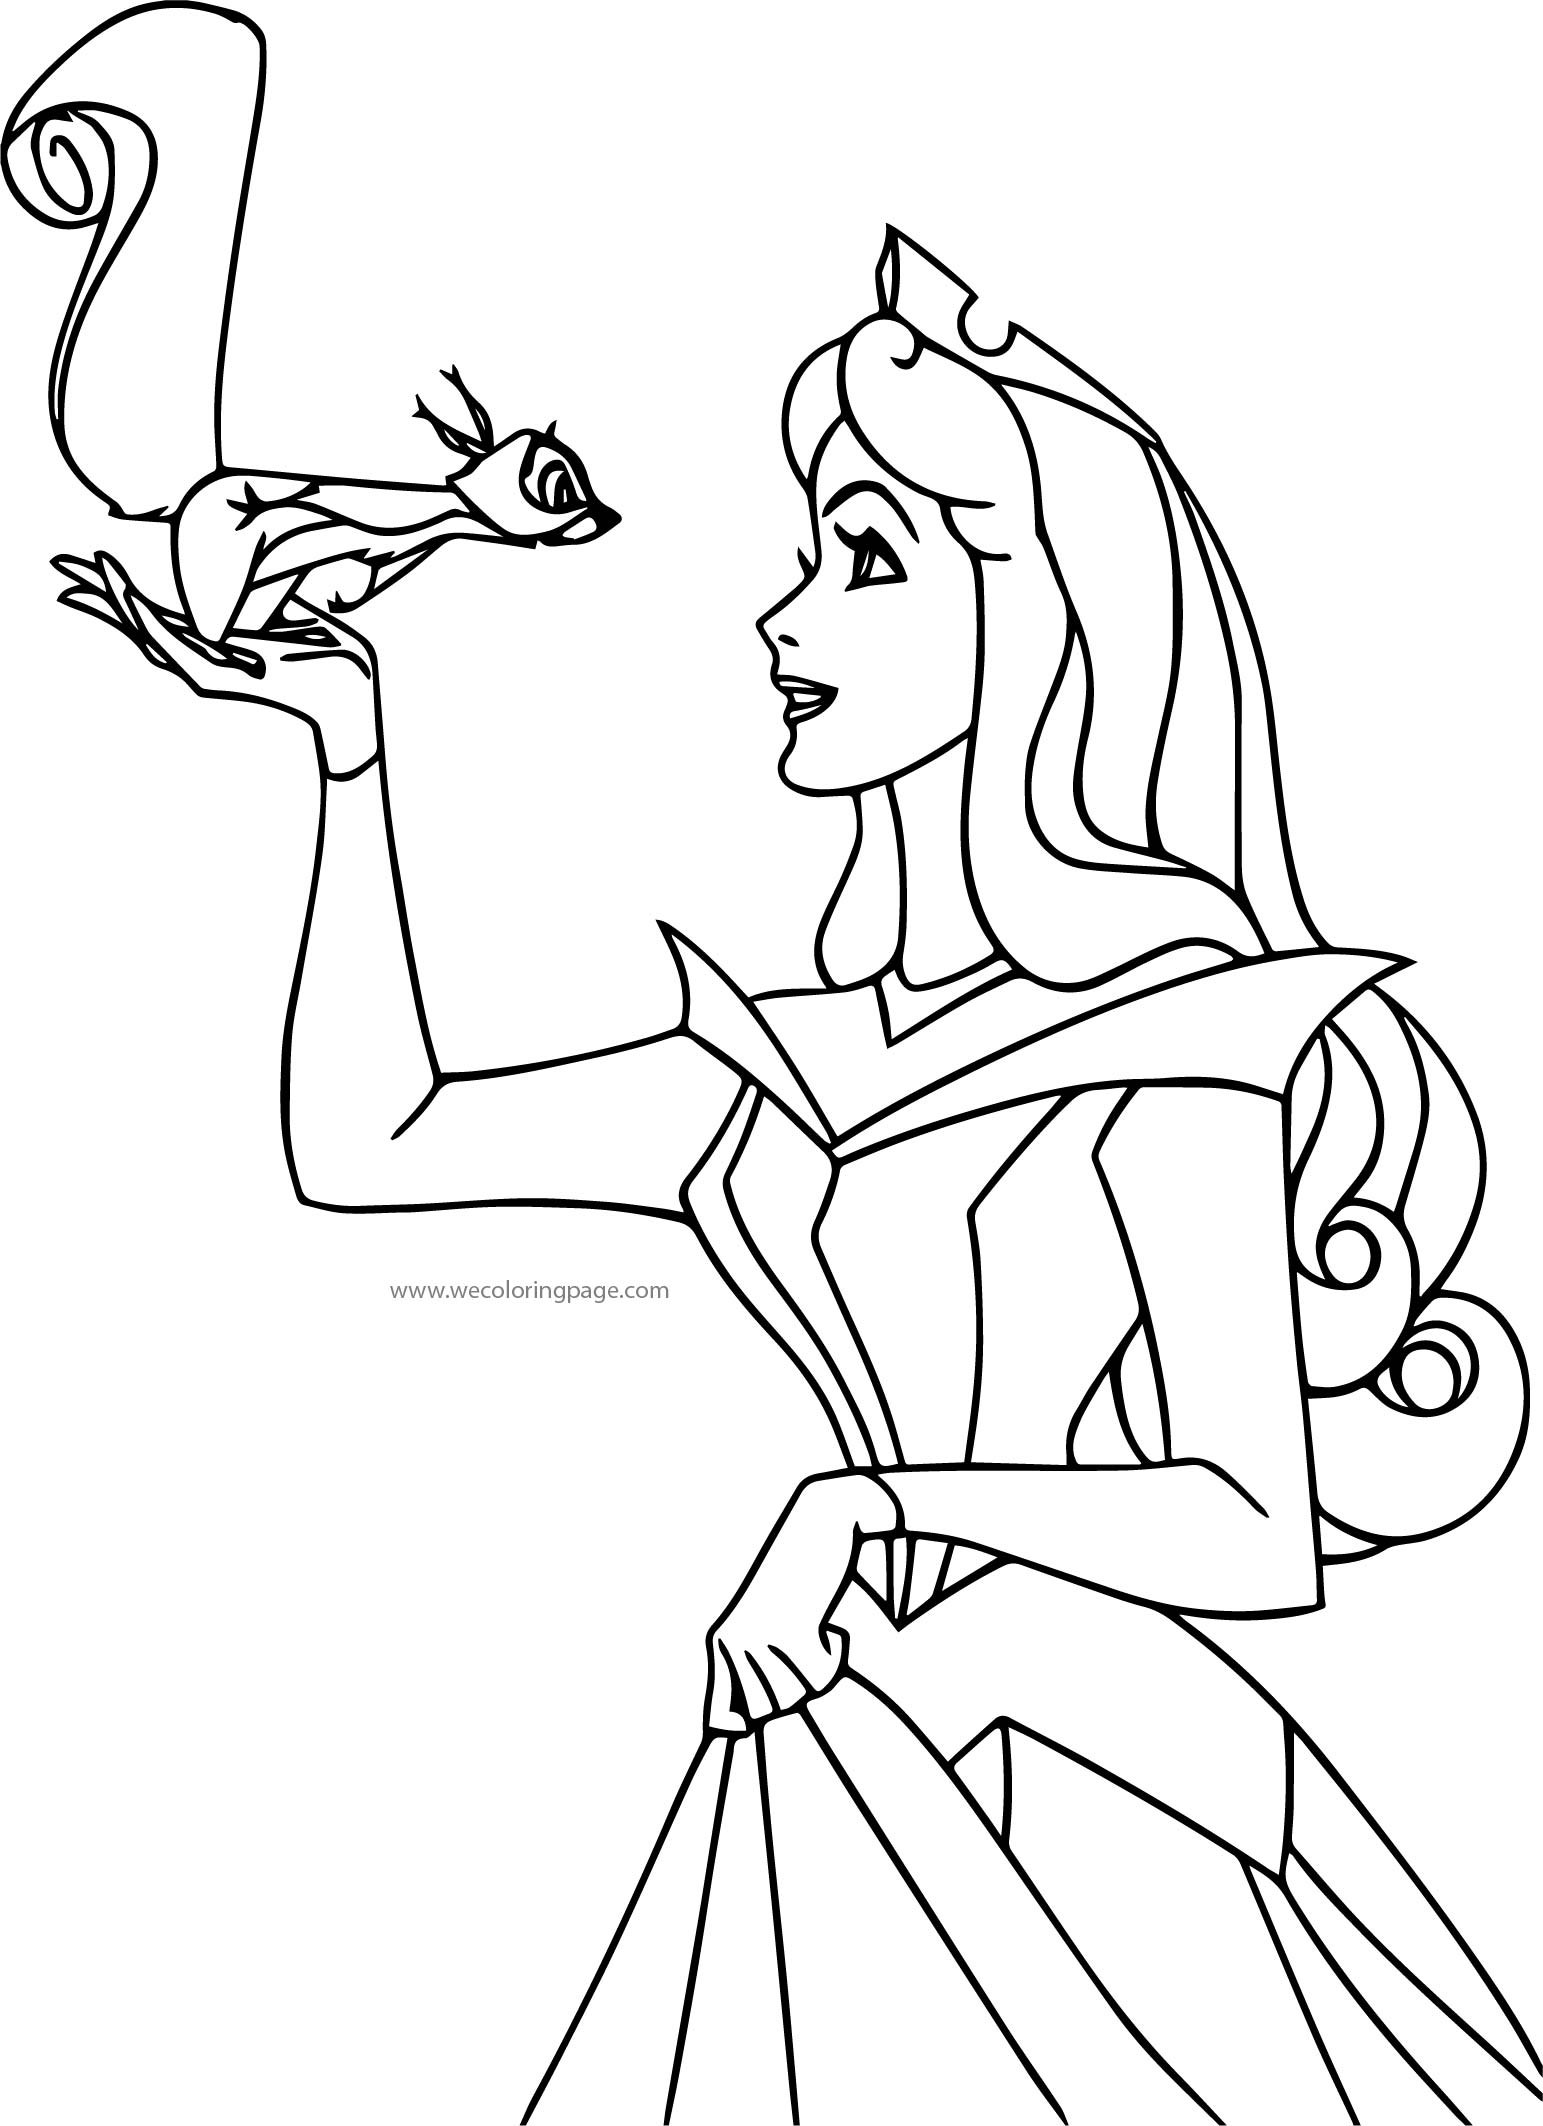 Disney Princess Sleeping Beauty At Disney Aurora Squirel Coloring Pages